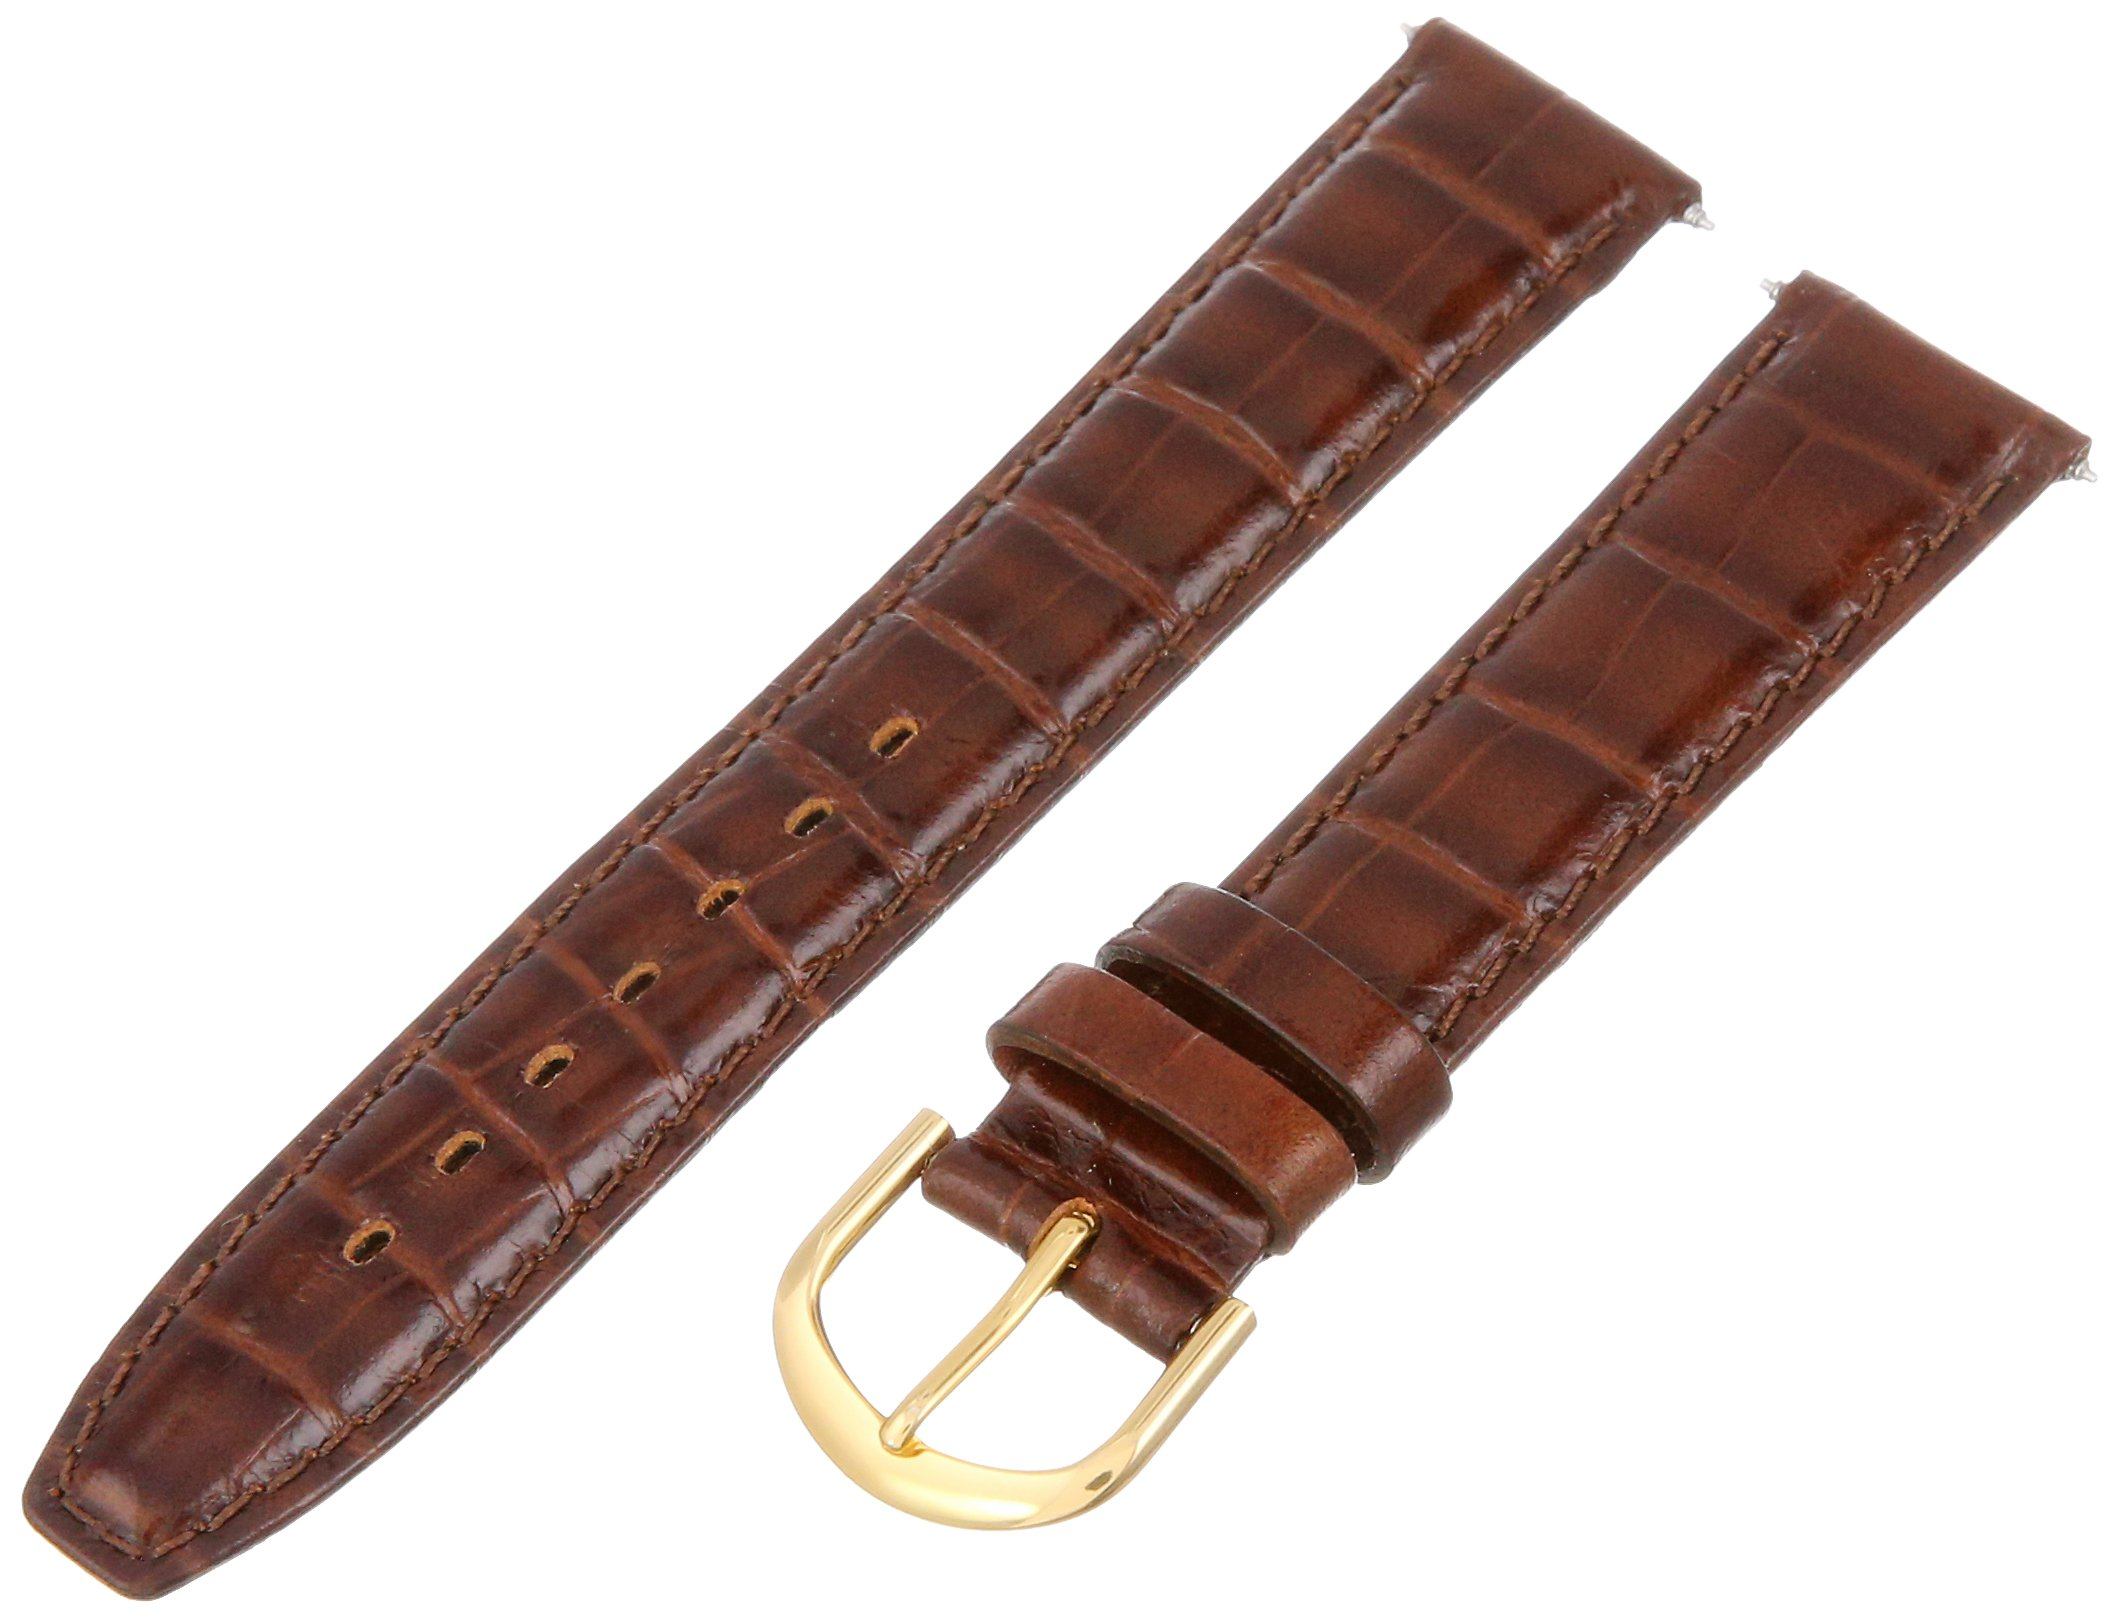 Voguestrap TX09718BN Allstrap 18mm Brown Regular-Length Baby Alligator Grain Watchband